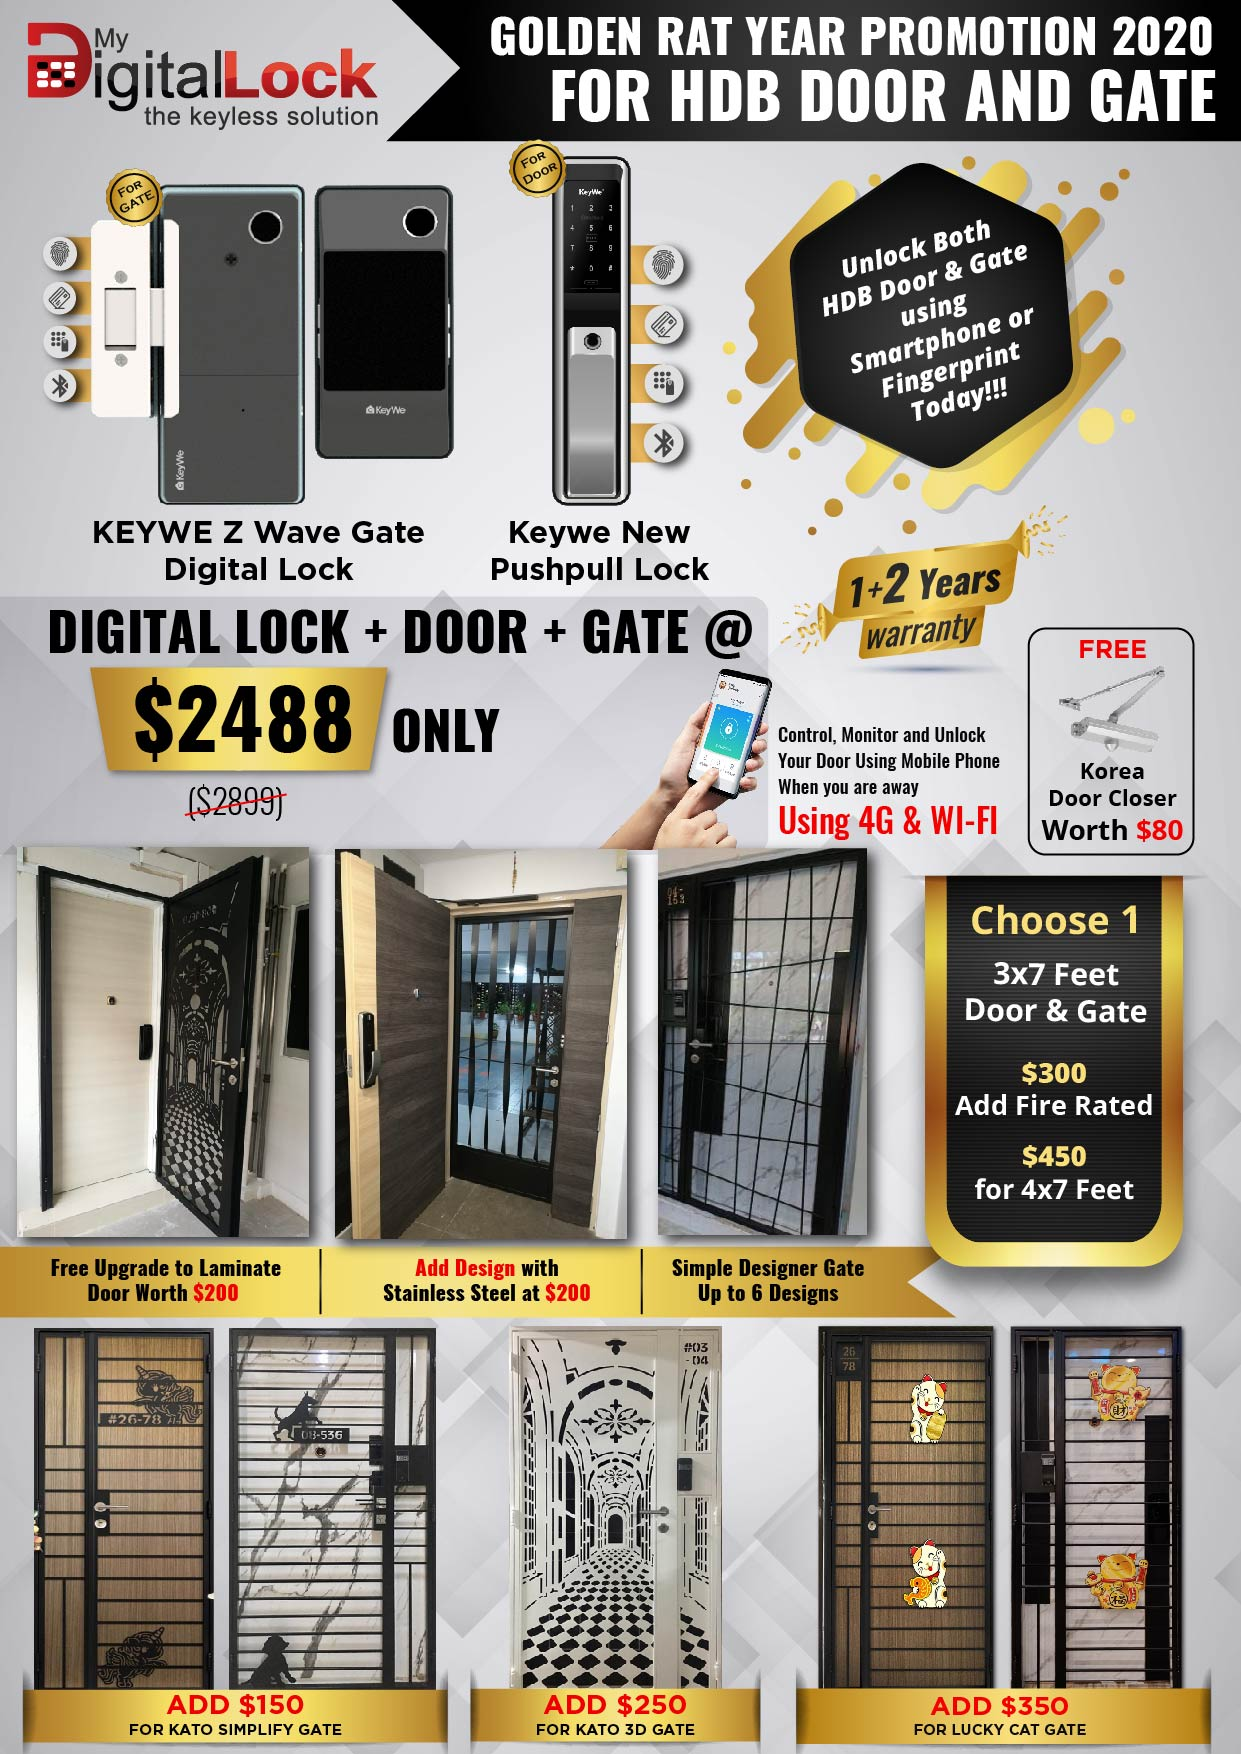 Golden Rat Year HDB Door and Gate Promotion with KeyWe Z Wave and Push Pull Digital Lock